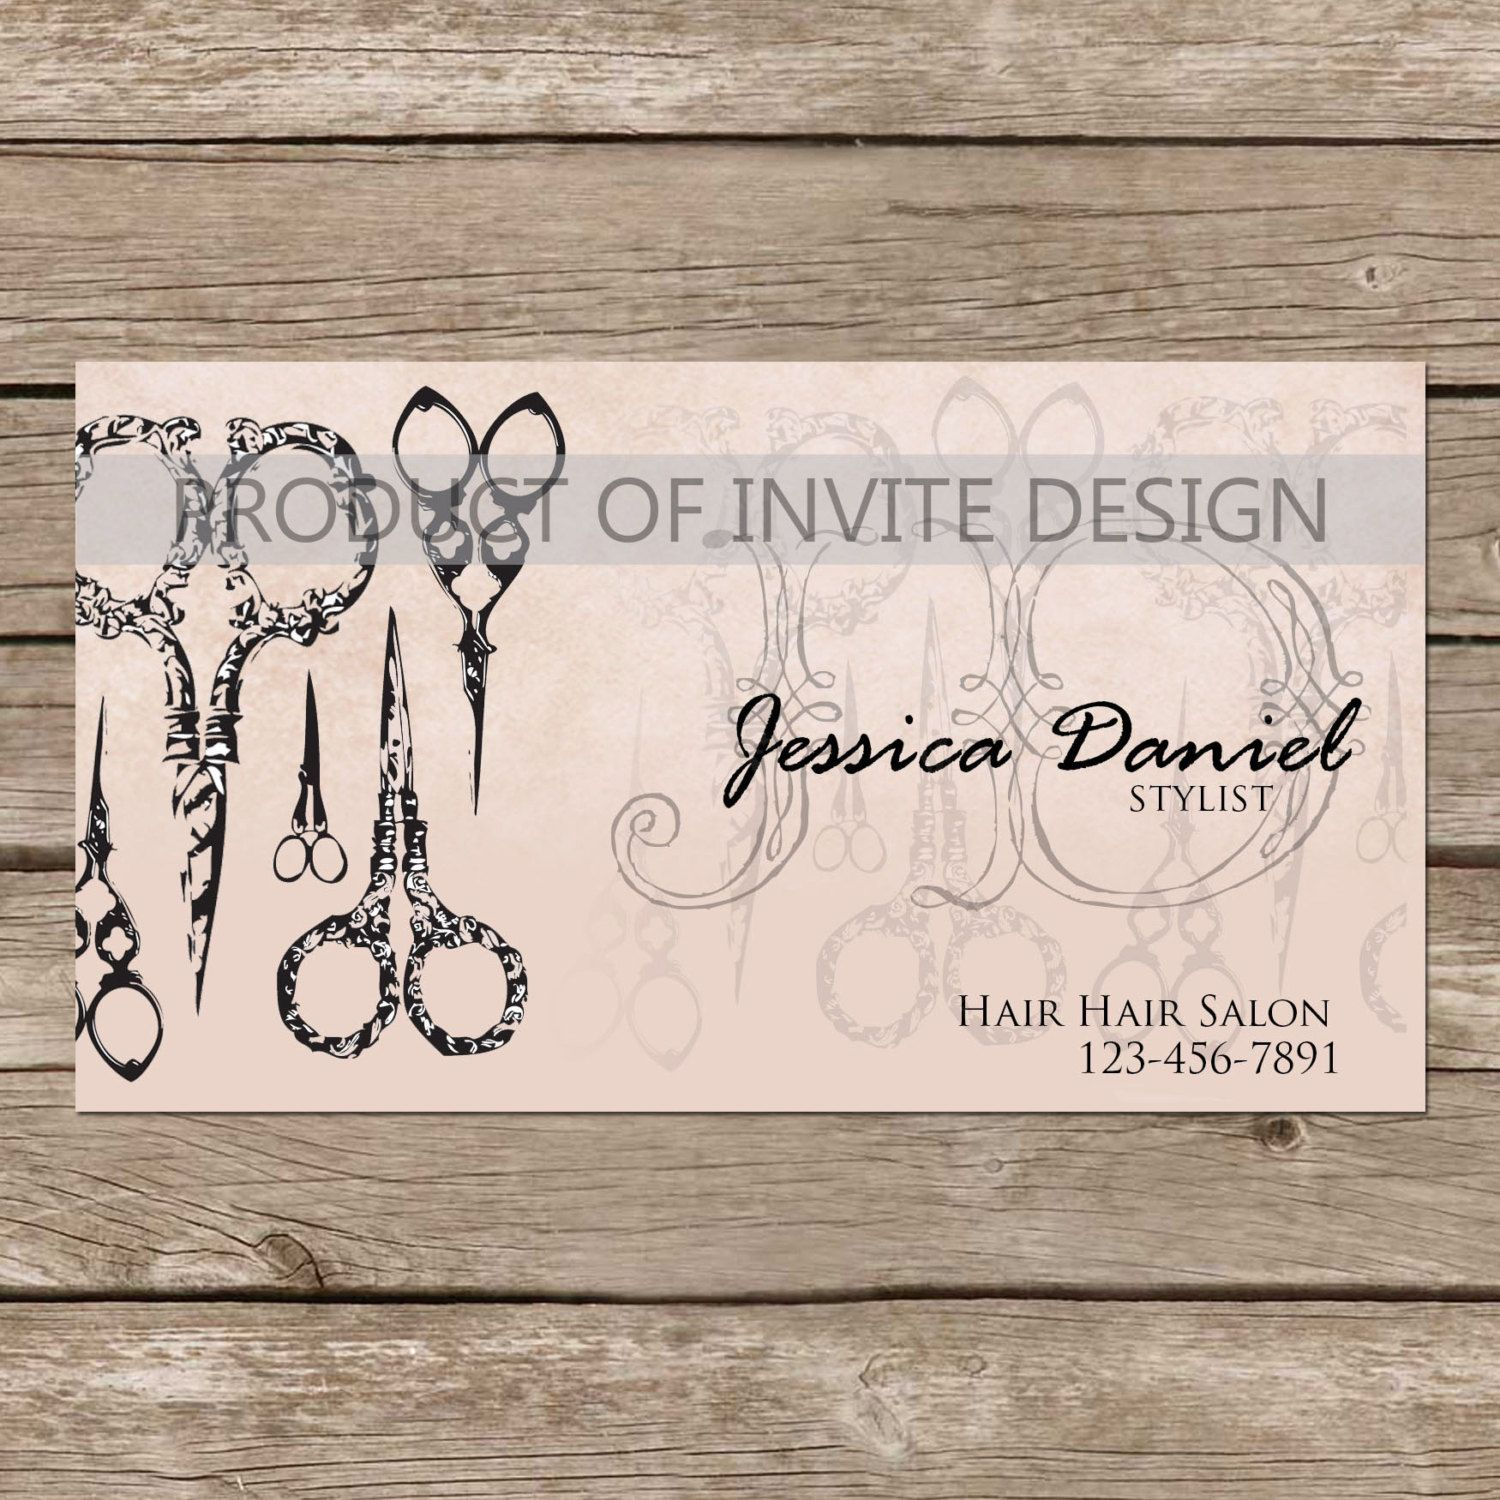 Hair stylist quotes for business cards b salon pinterest salo hair stylist quotes for business cards b reheart Image collections